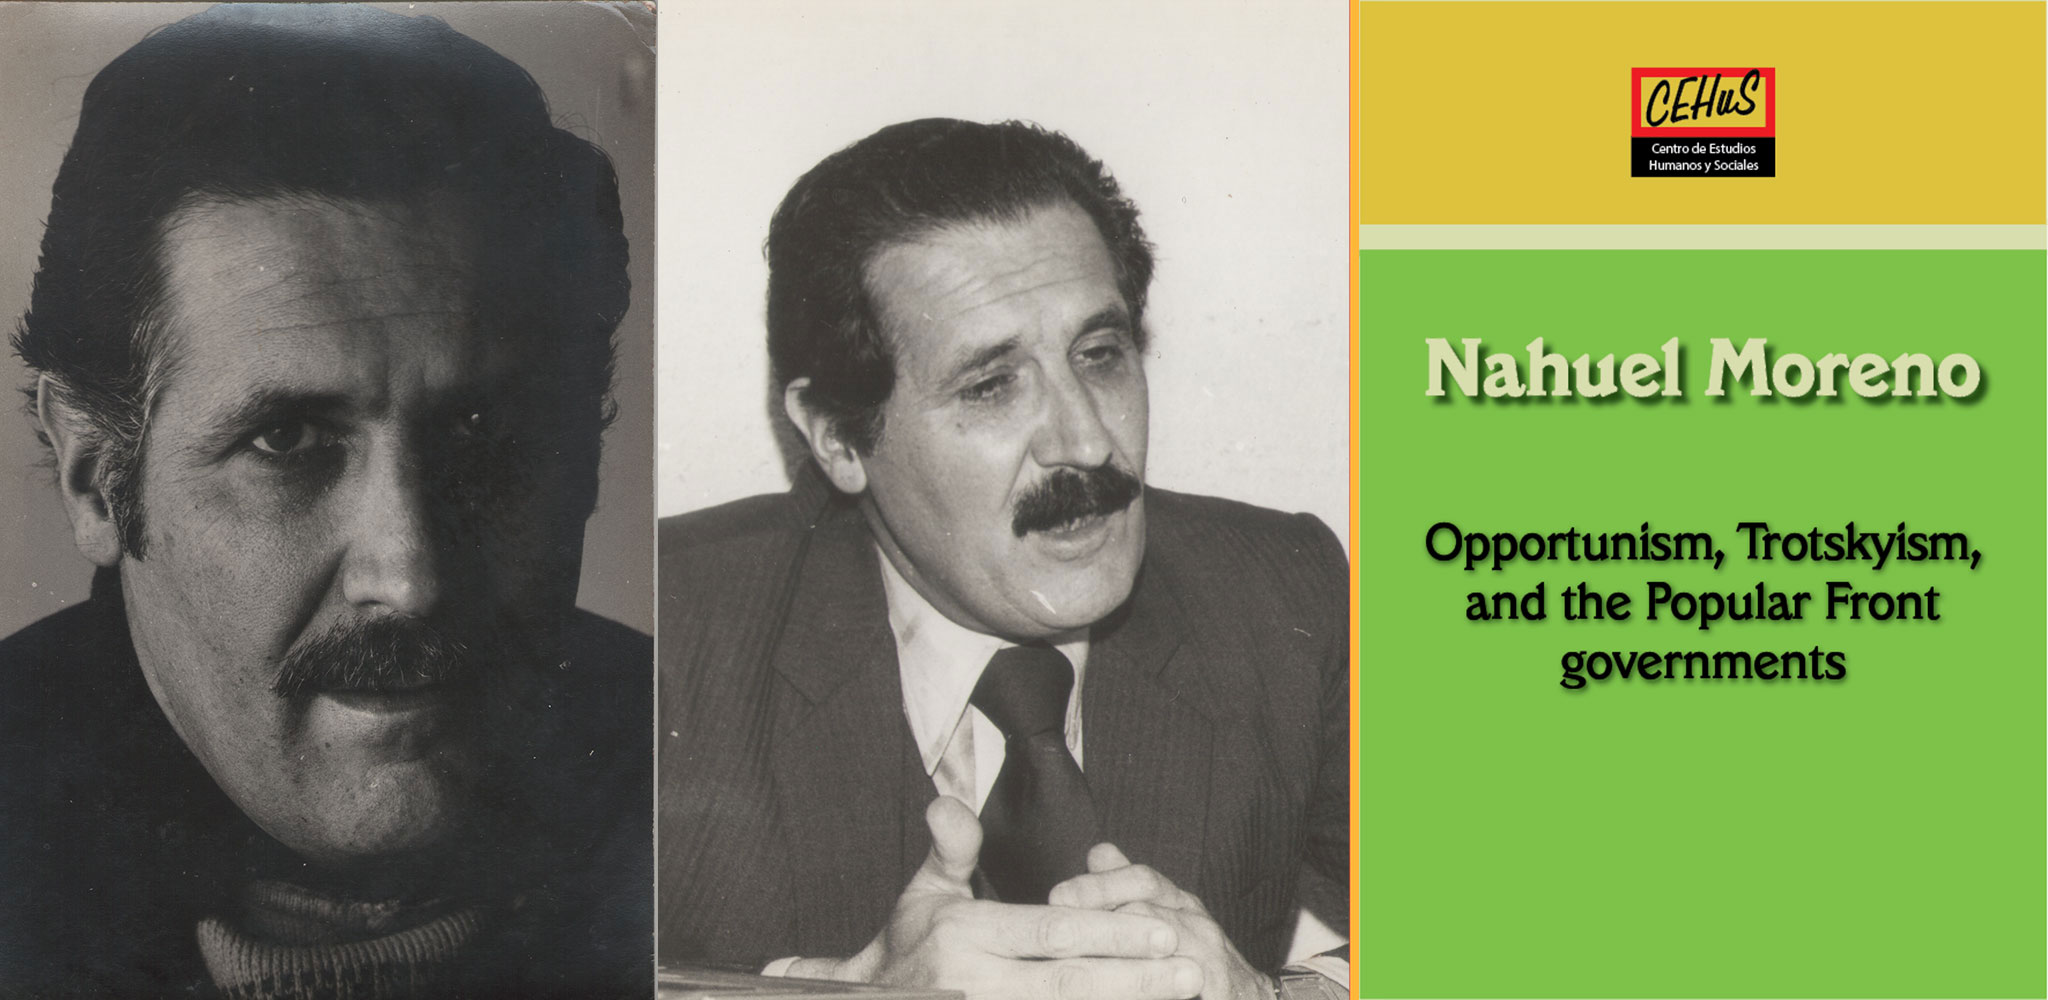 OPPORTUNISM, TROTSKYISM, AND THE POPULAR FRONT GOVERNMENTS (1982)